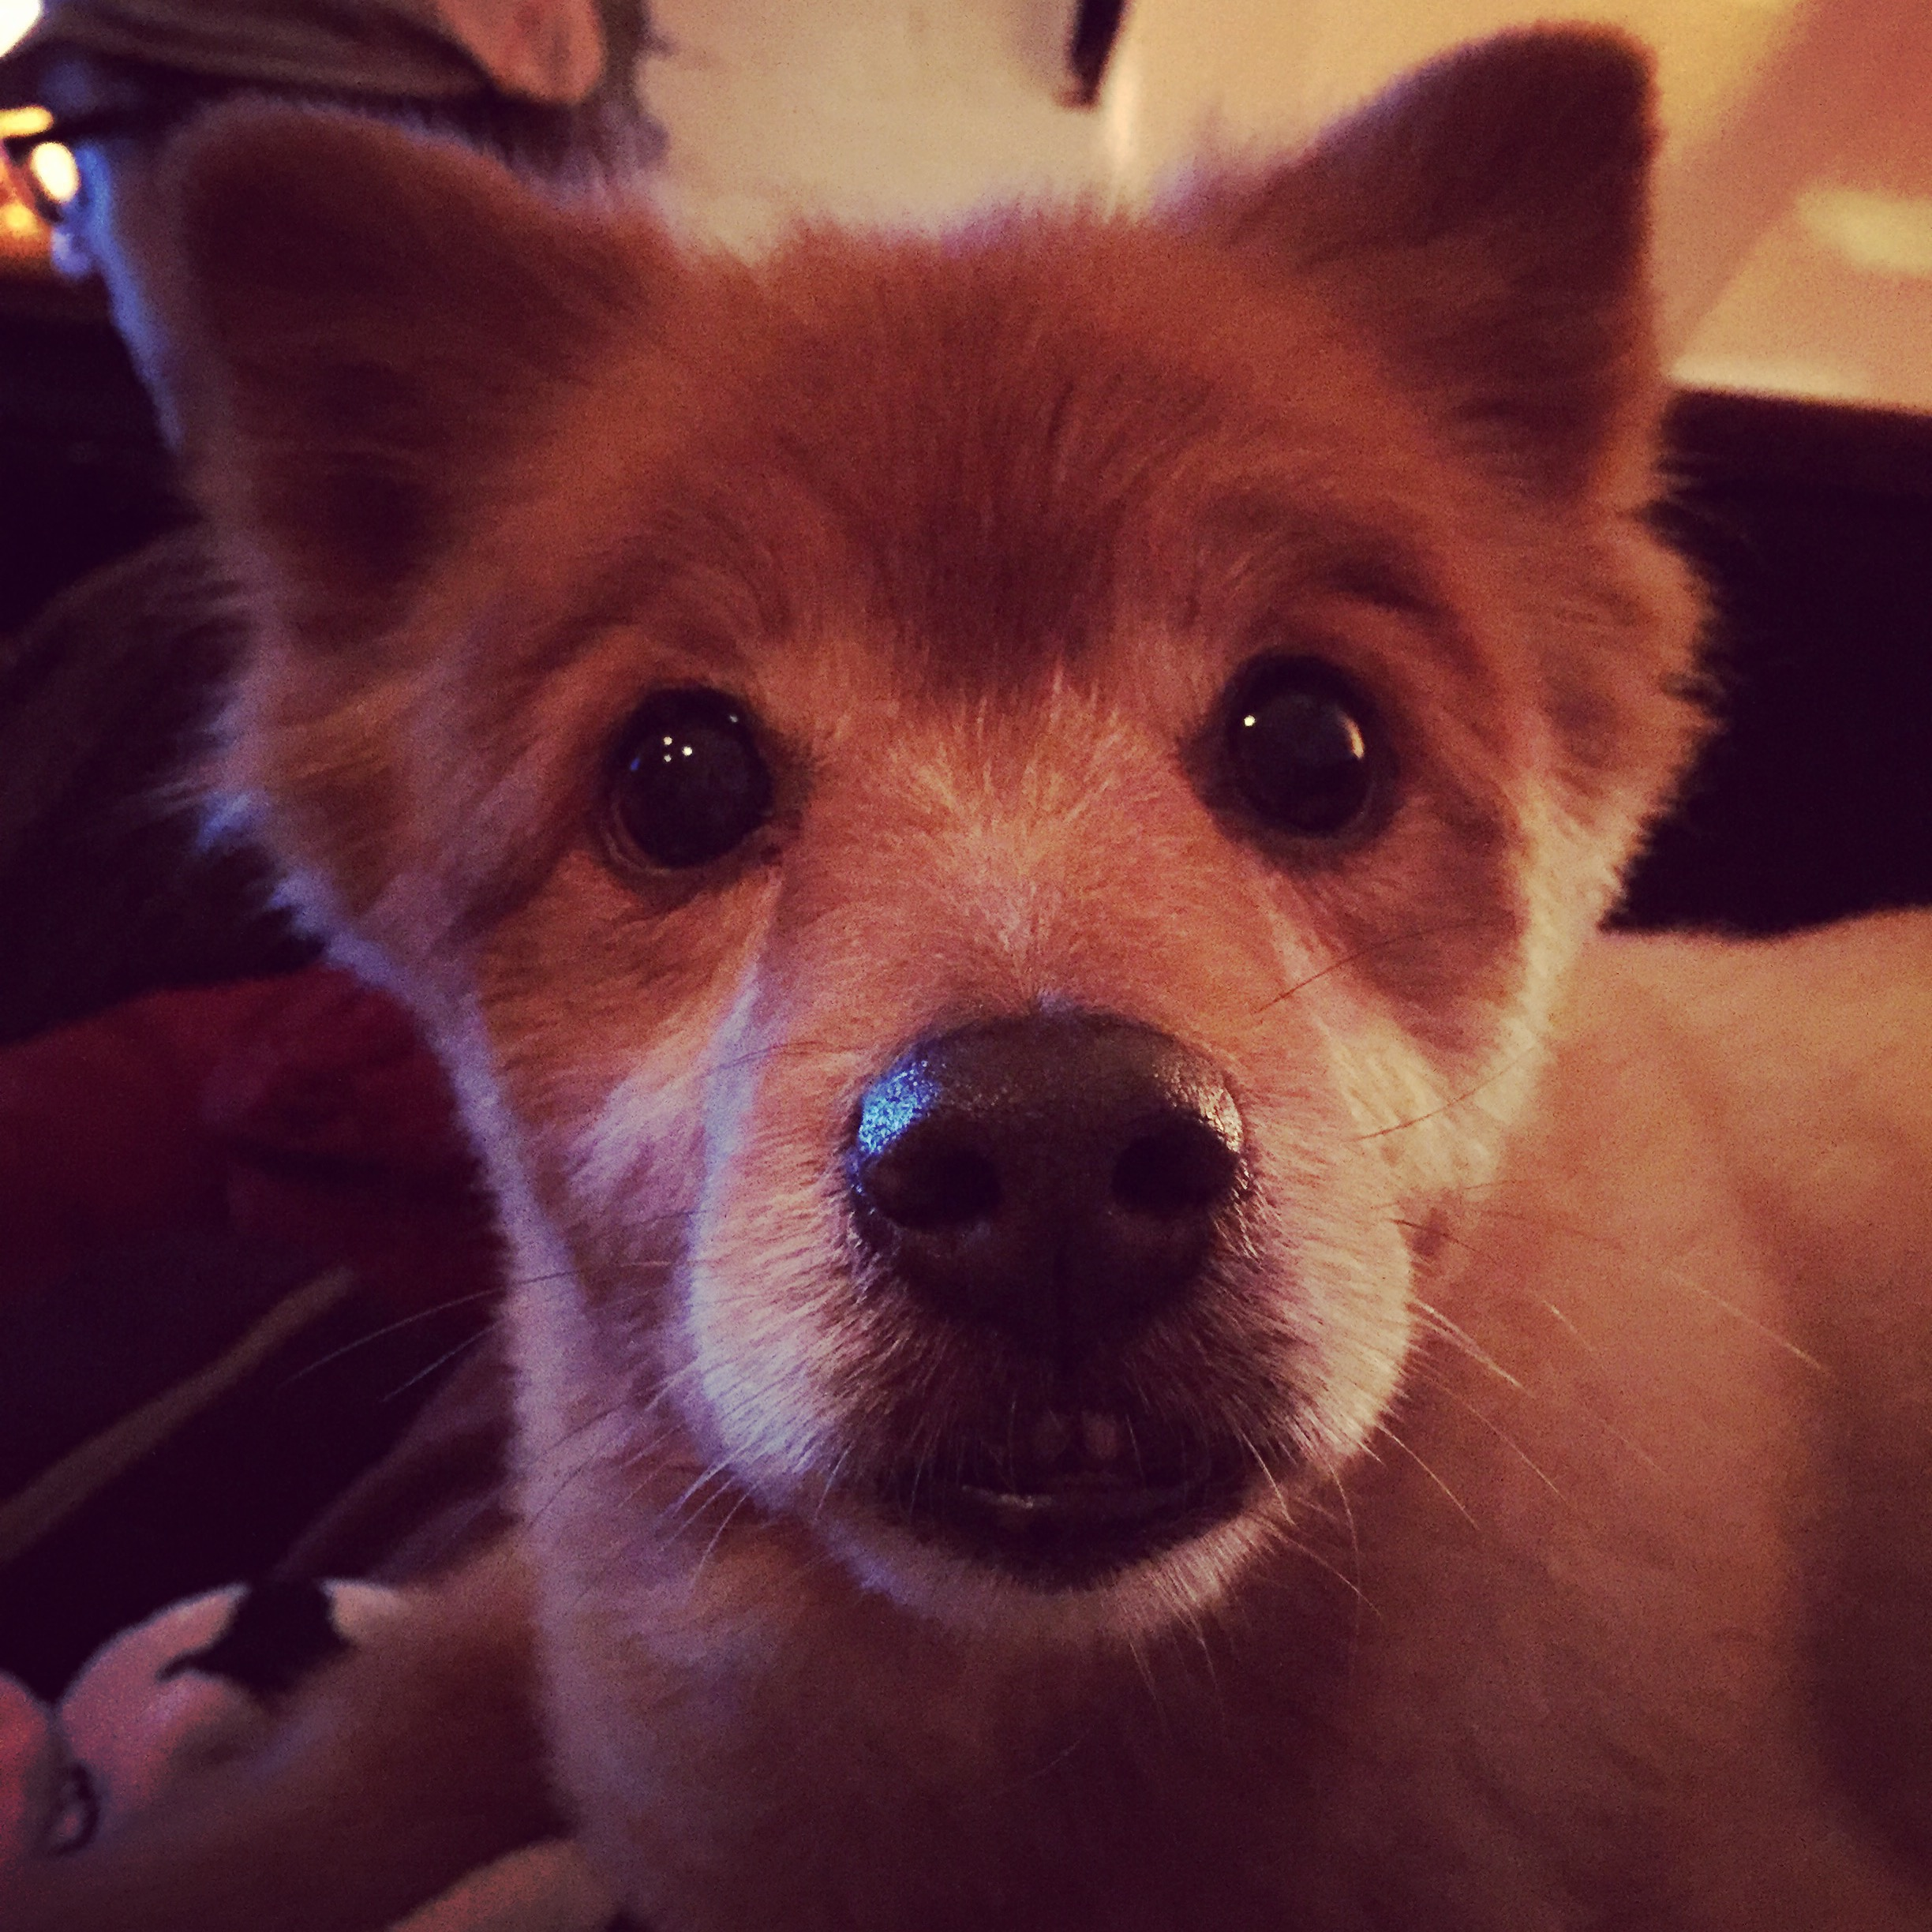 Red - Red is a rescue dog that WE adopted back in 2015. we *think* he's a Finnish Spitz, but yes, he does look like a fox. :)